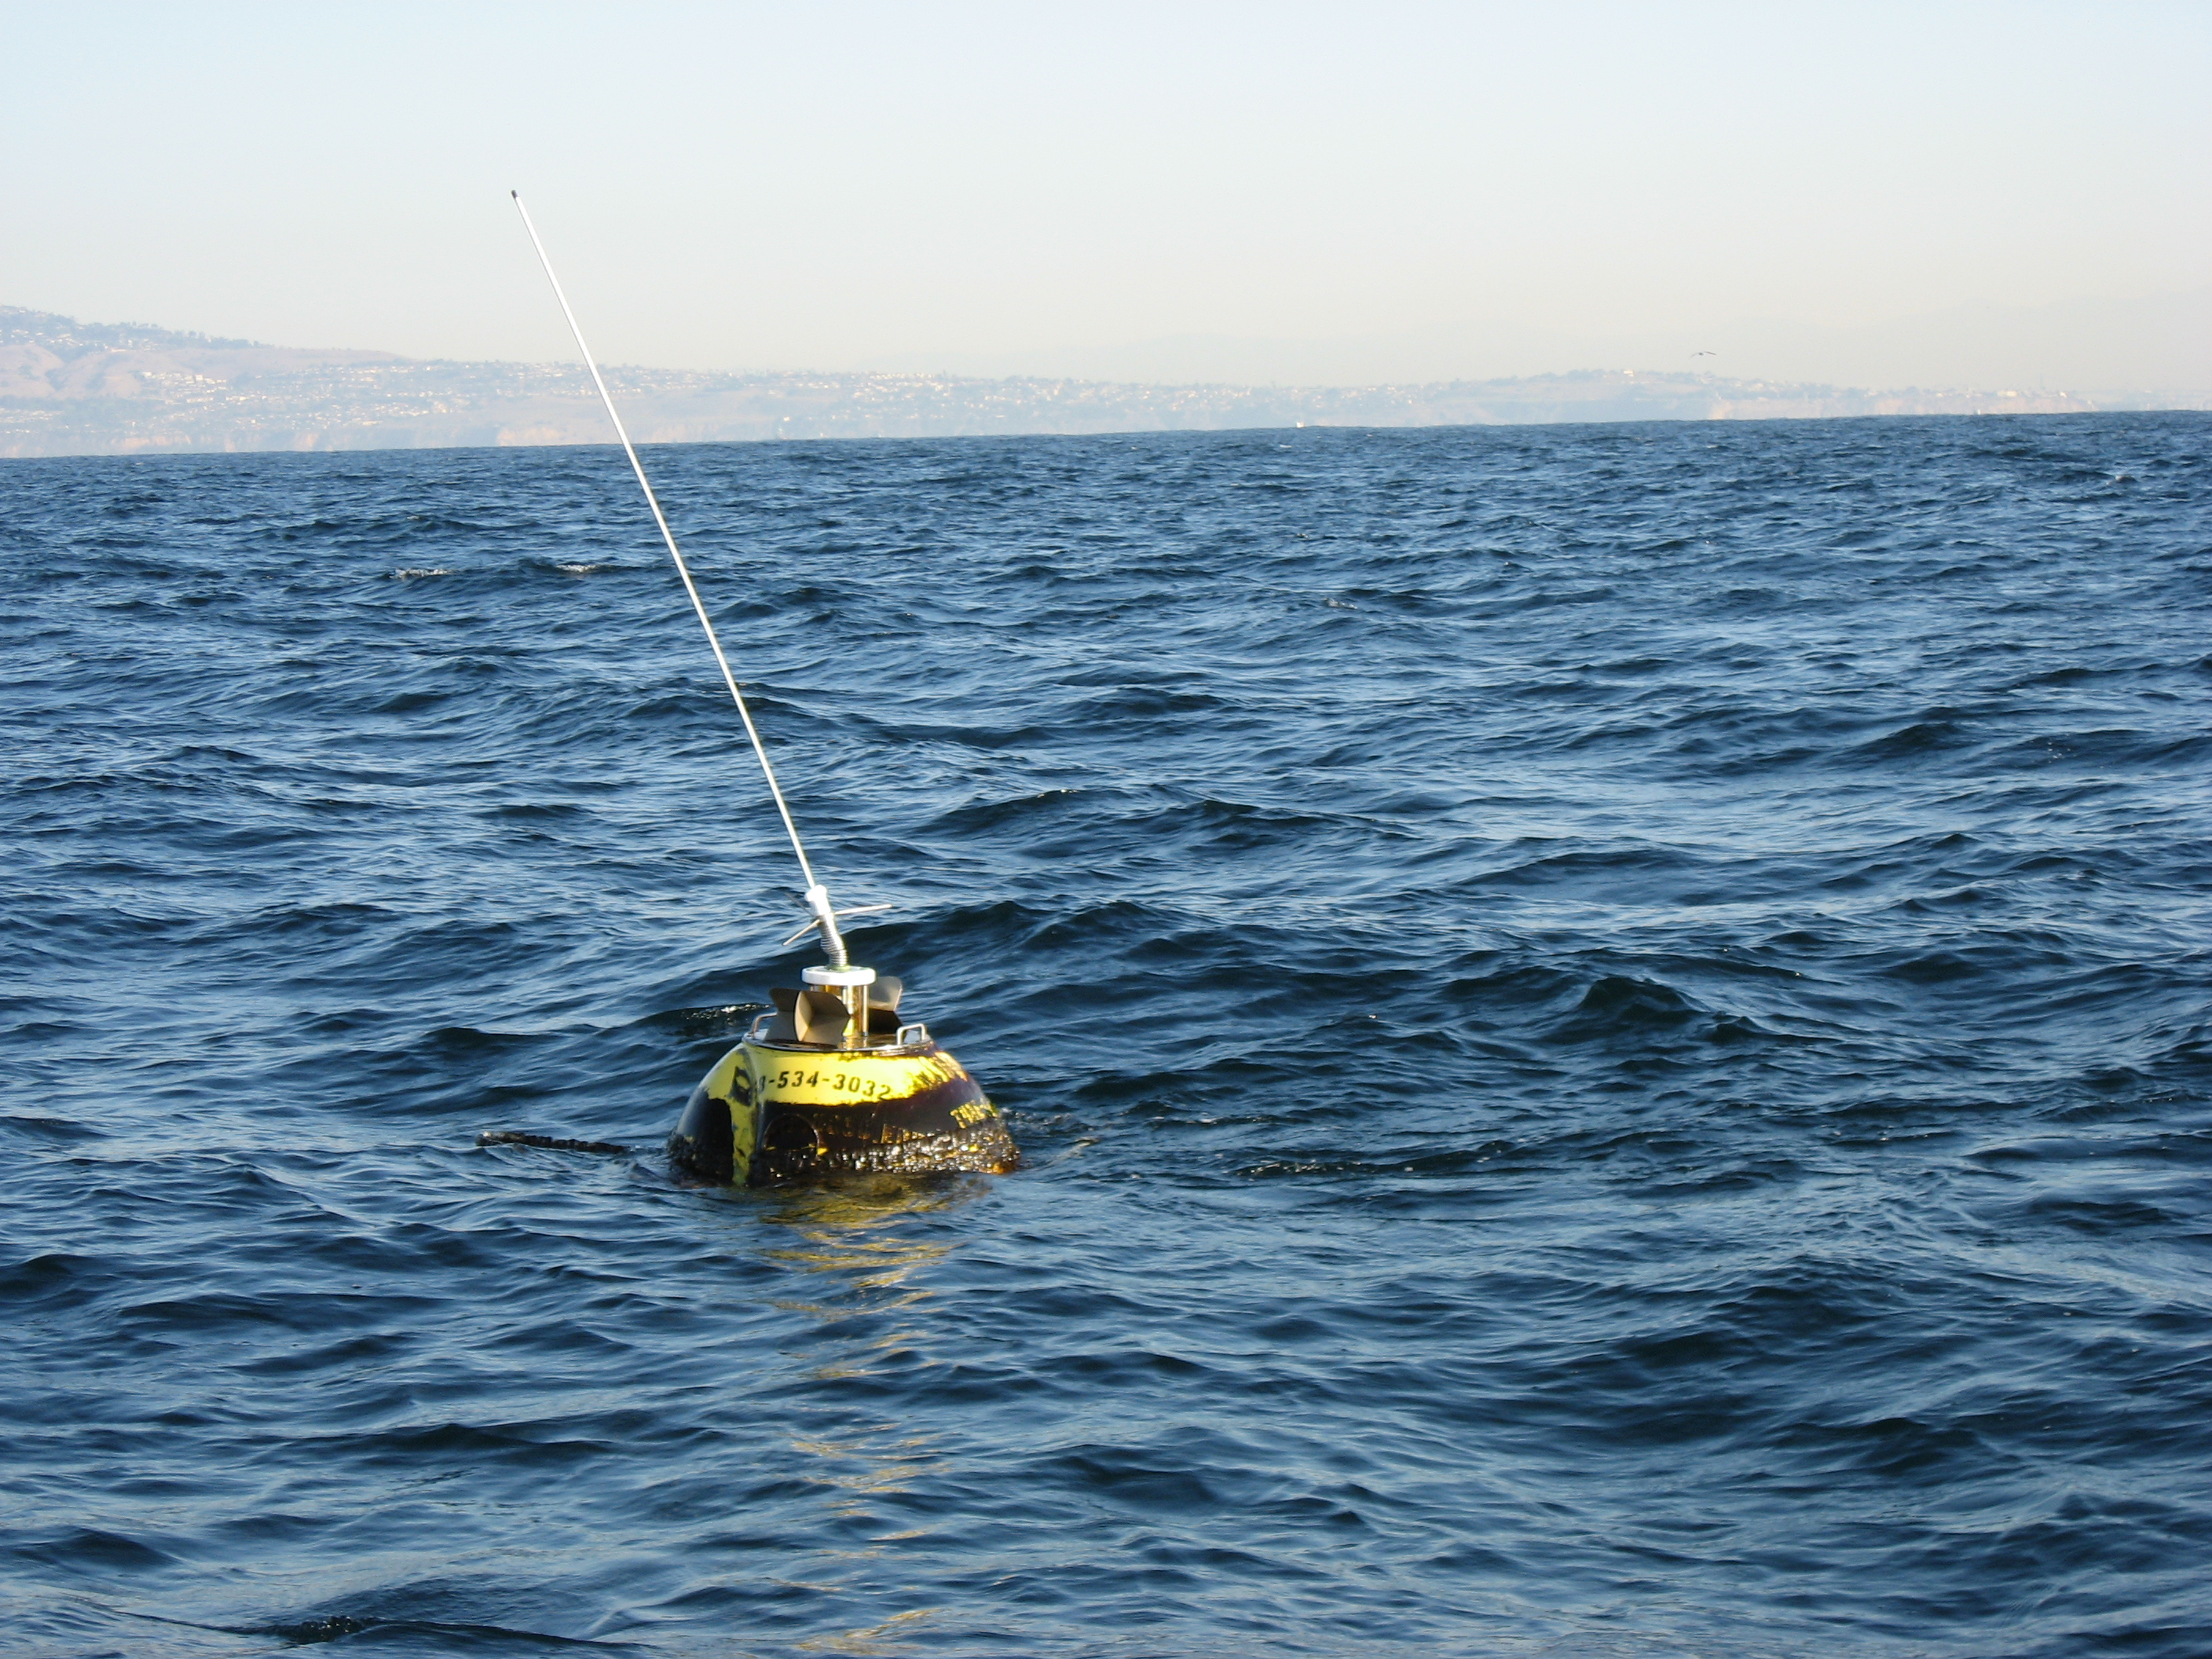 Buoy damaged from collision before pick-up